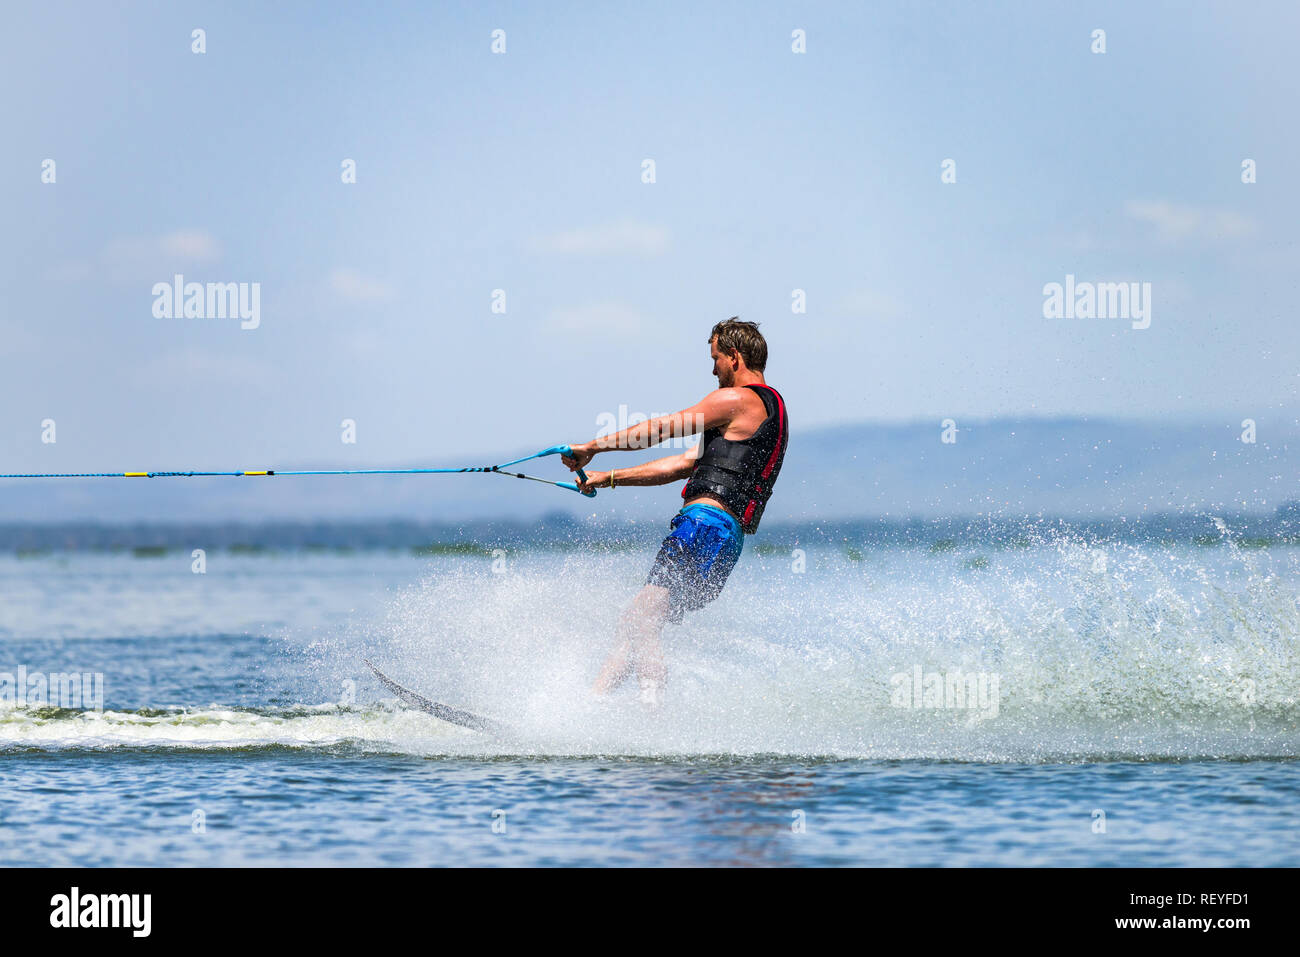 A Caucasian man wakeboarding with water spray behind him, Lake Naivasha, Kenya - Stock Image